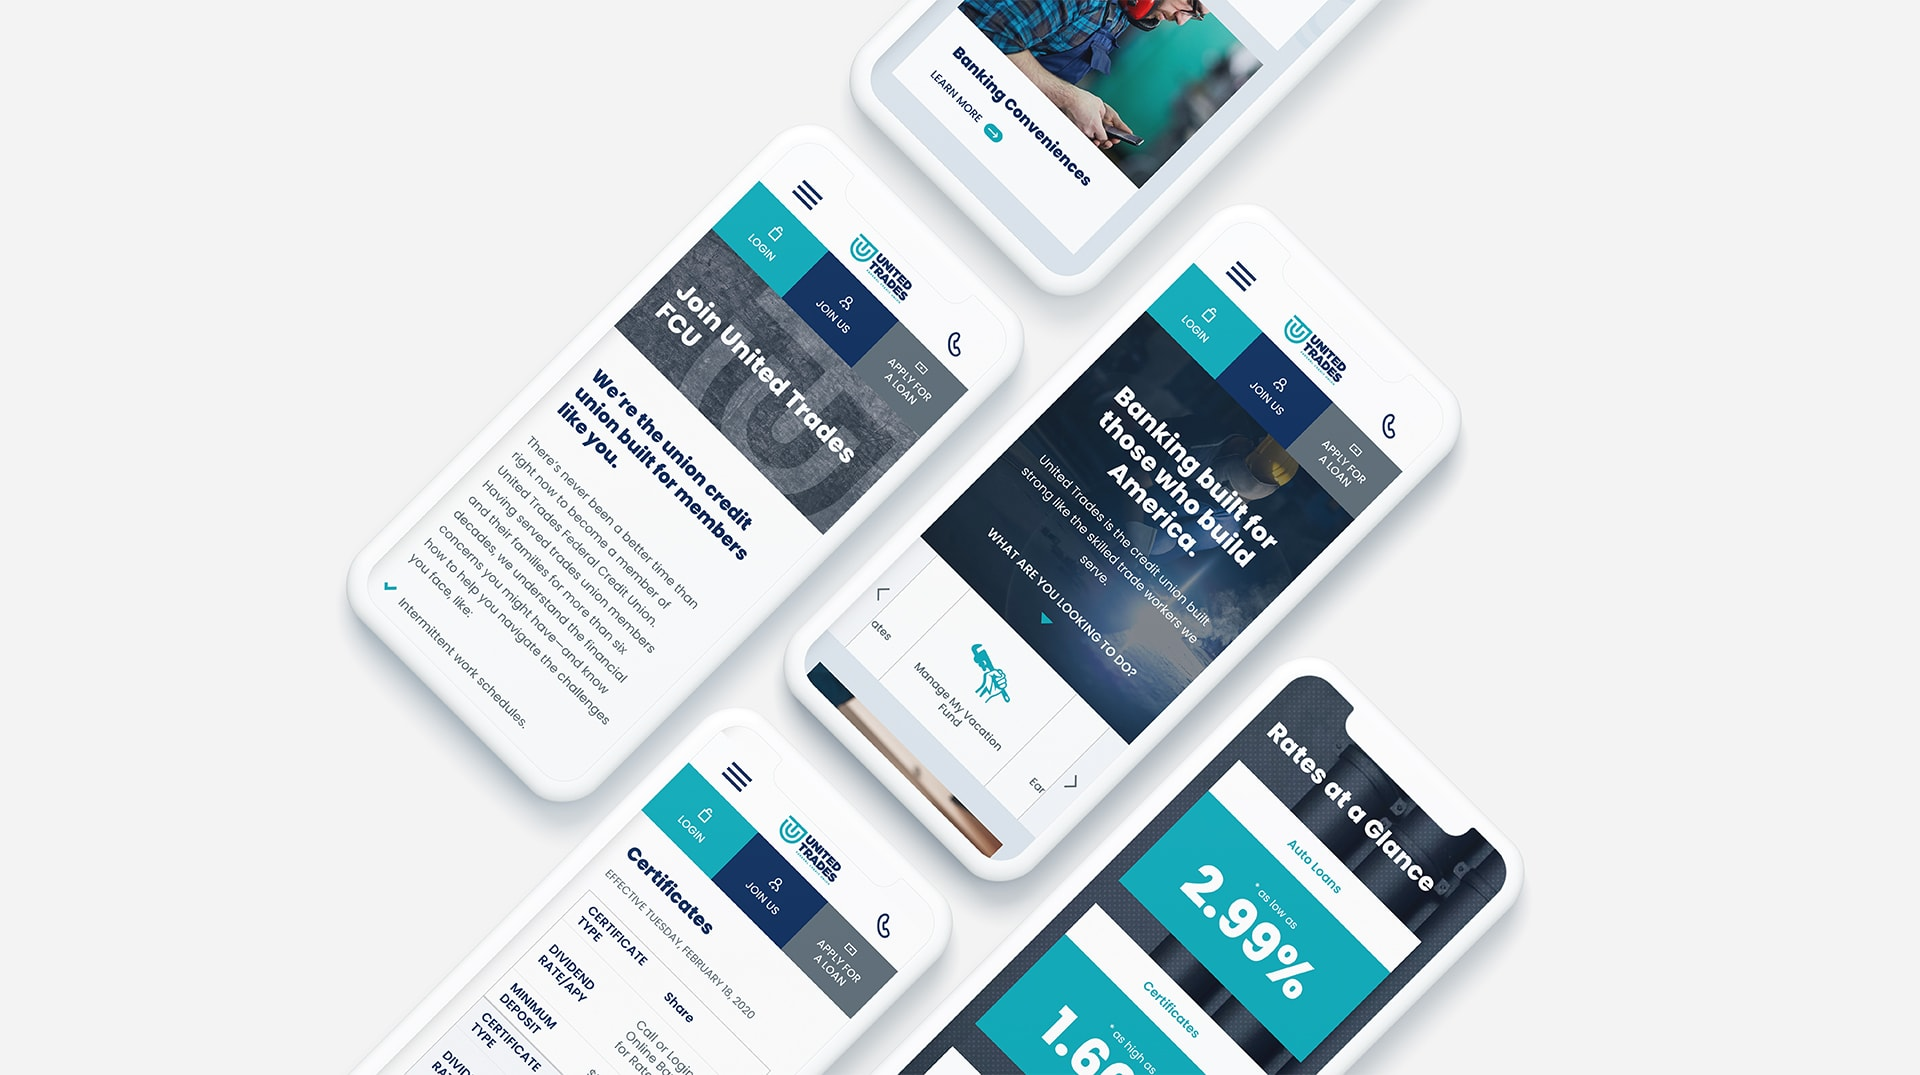 UTFCU Mobile Optimized Website Redesign by Austin Williams a New York Digital Marketing Agency